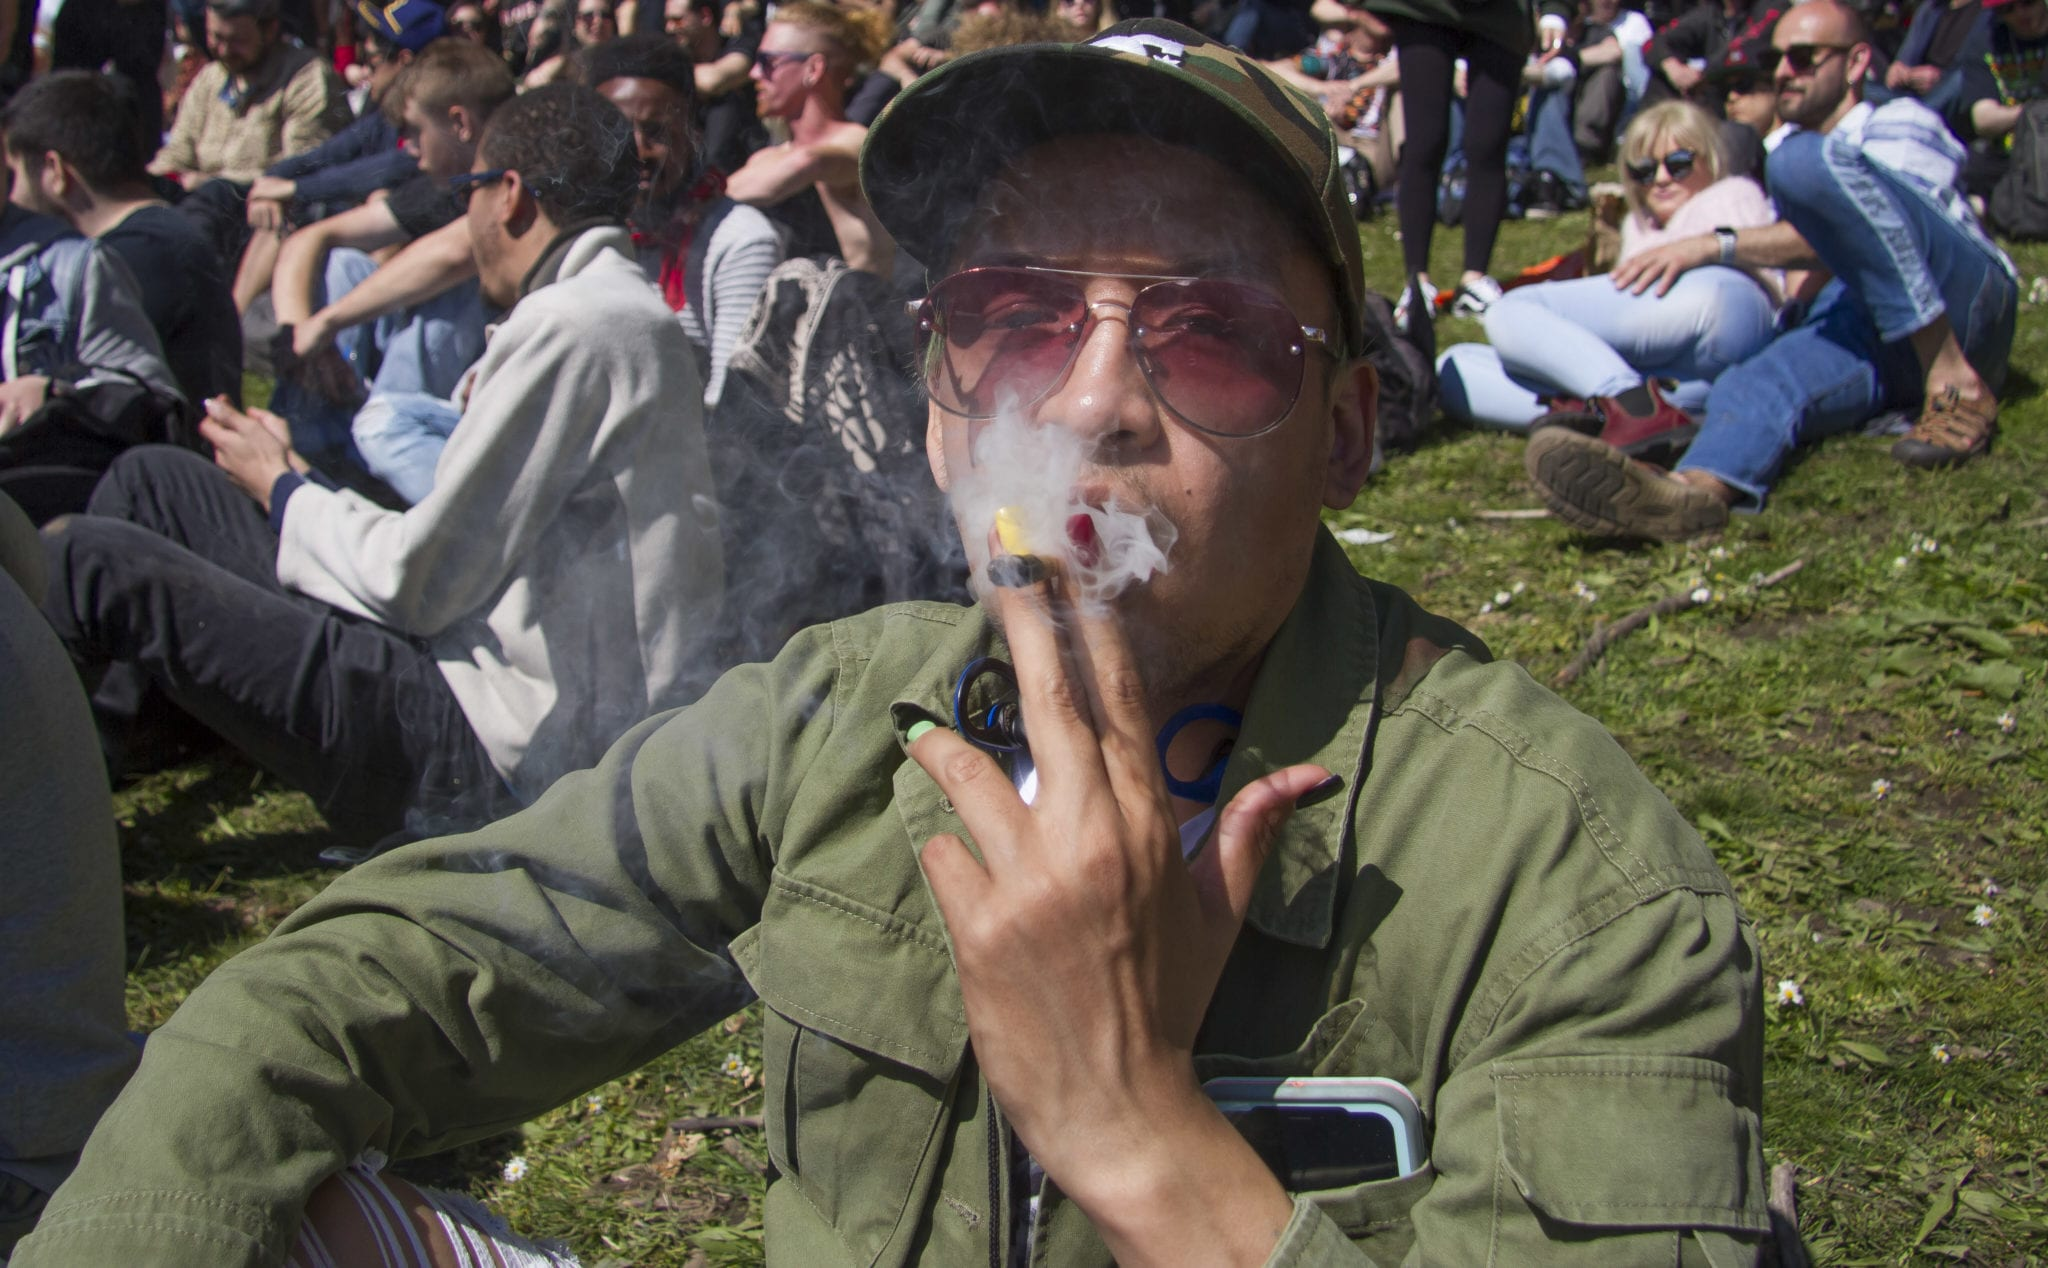 Canadians consumed more weed in 2020: StatsCan